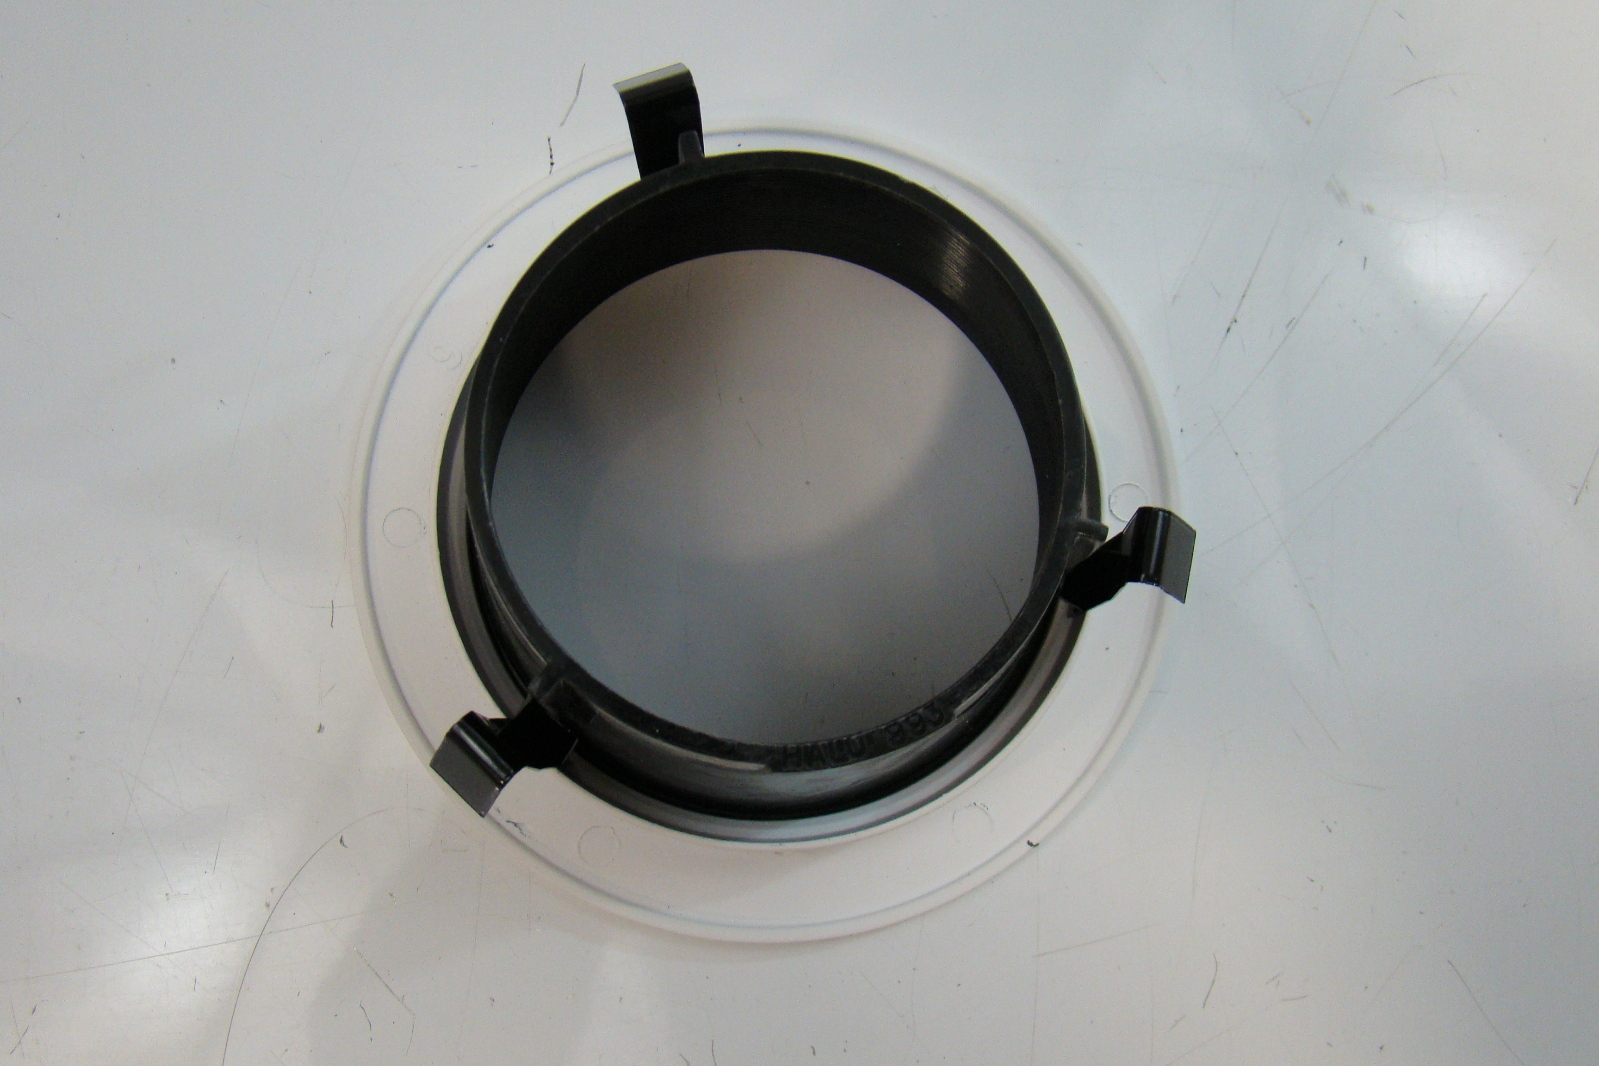 12 Halo 4 Black Baffle Recessed Lighting White Trim 993P EBay